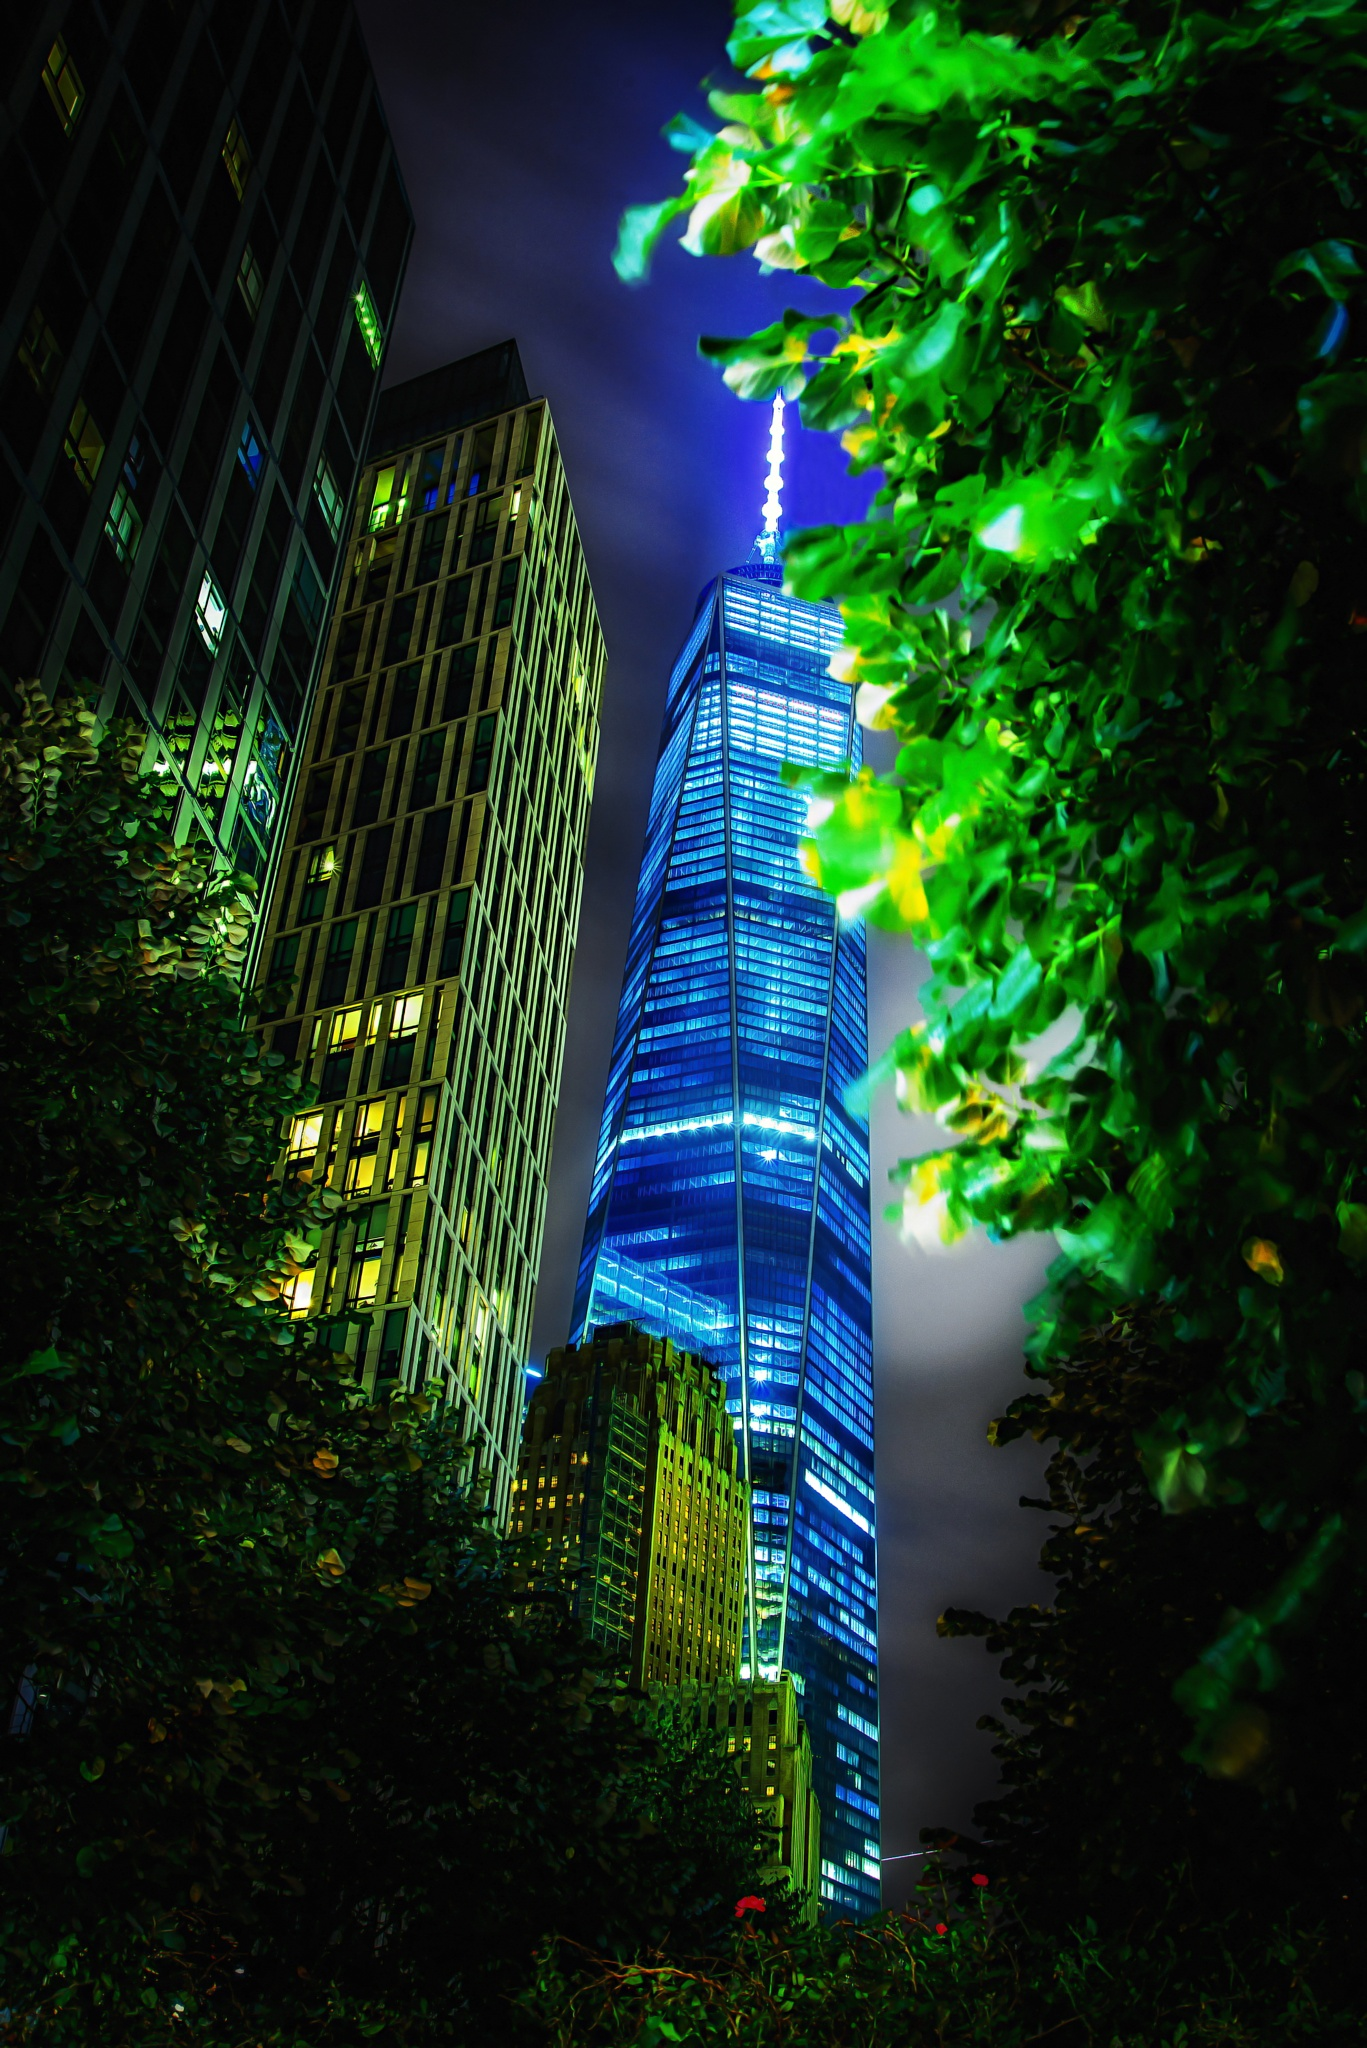 Blue beacon by 8th Rule Photography